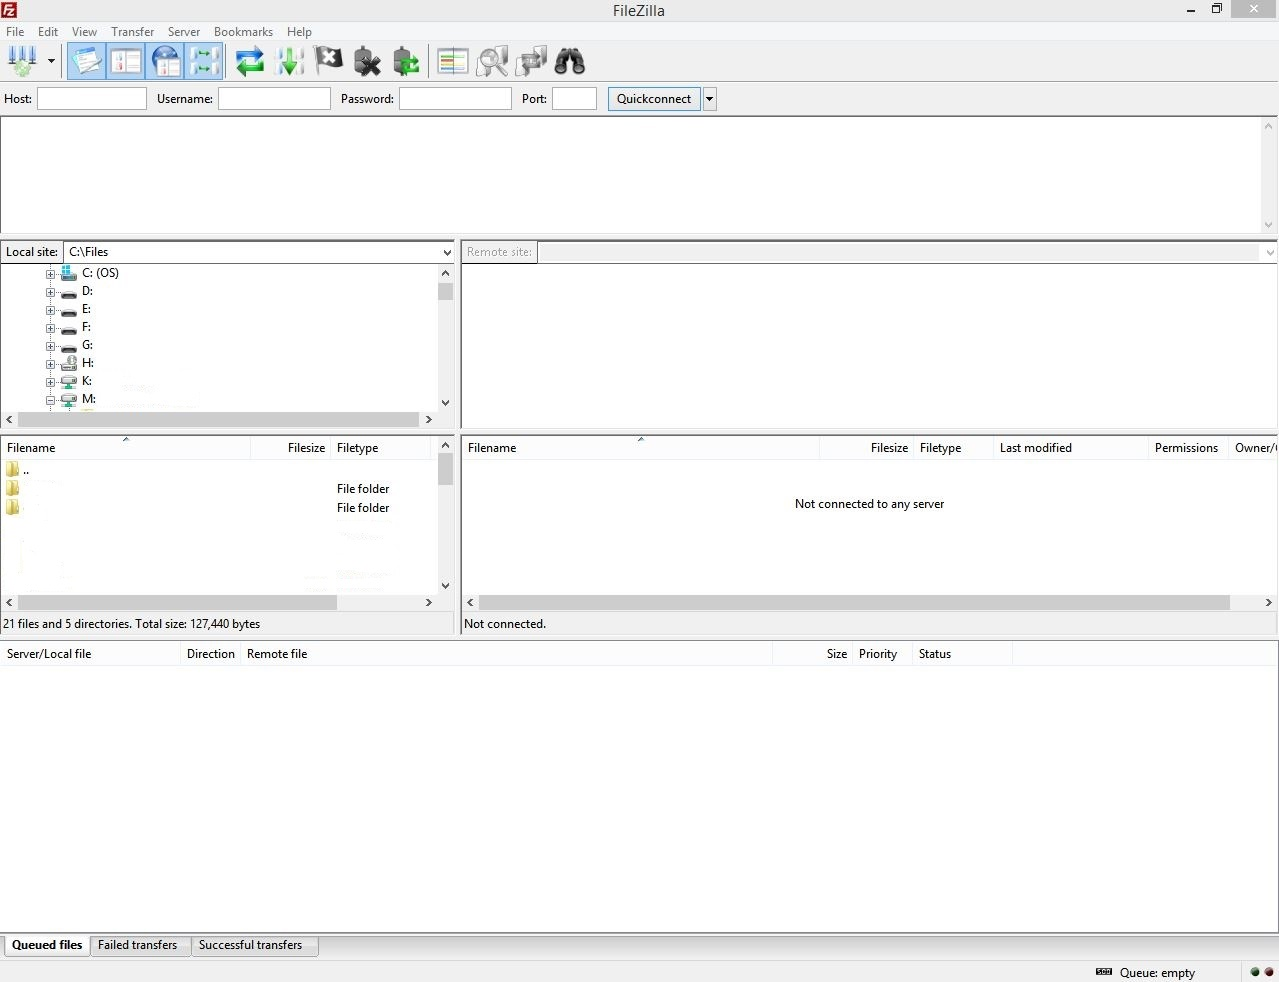 FileZilla Initial Screen